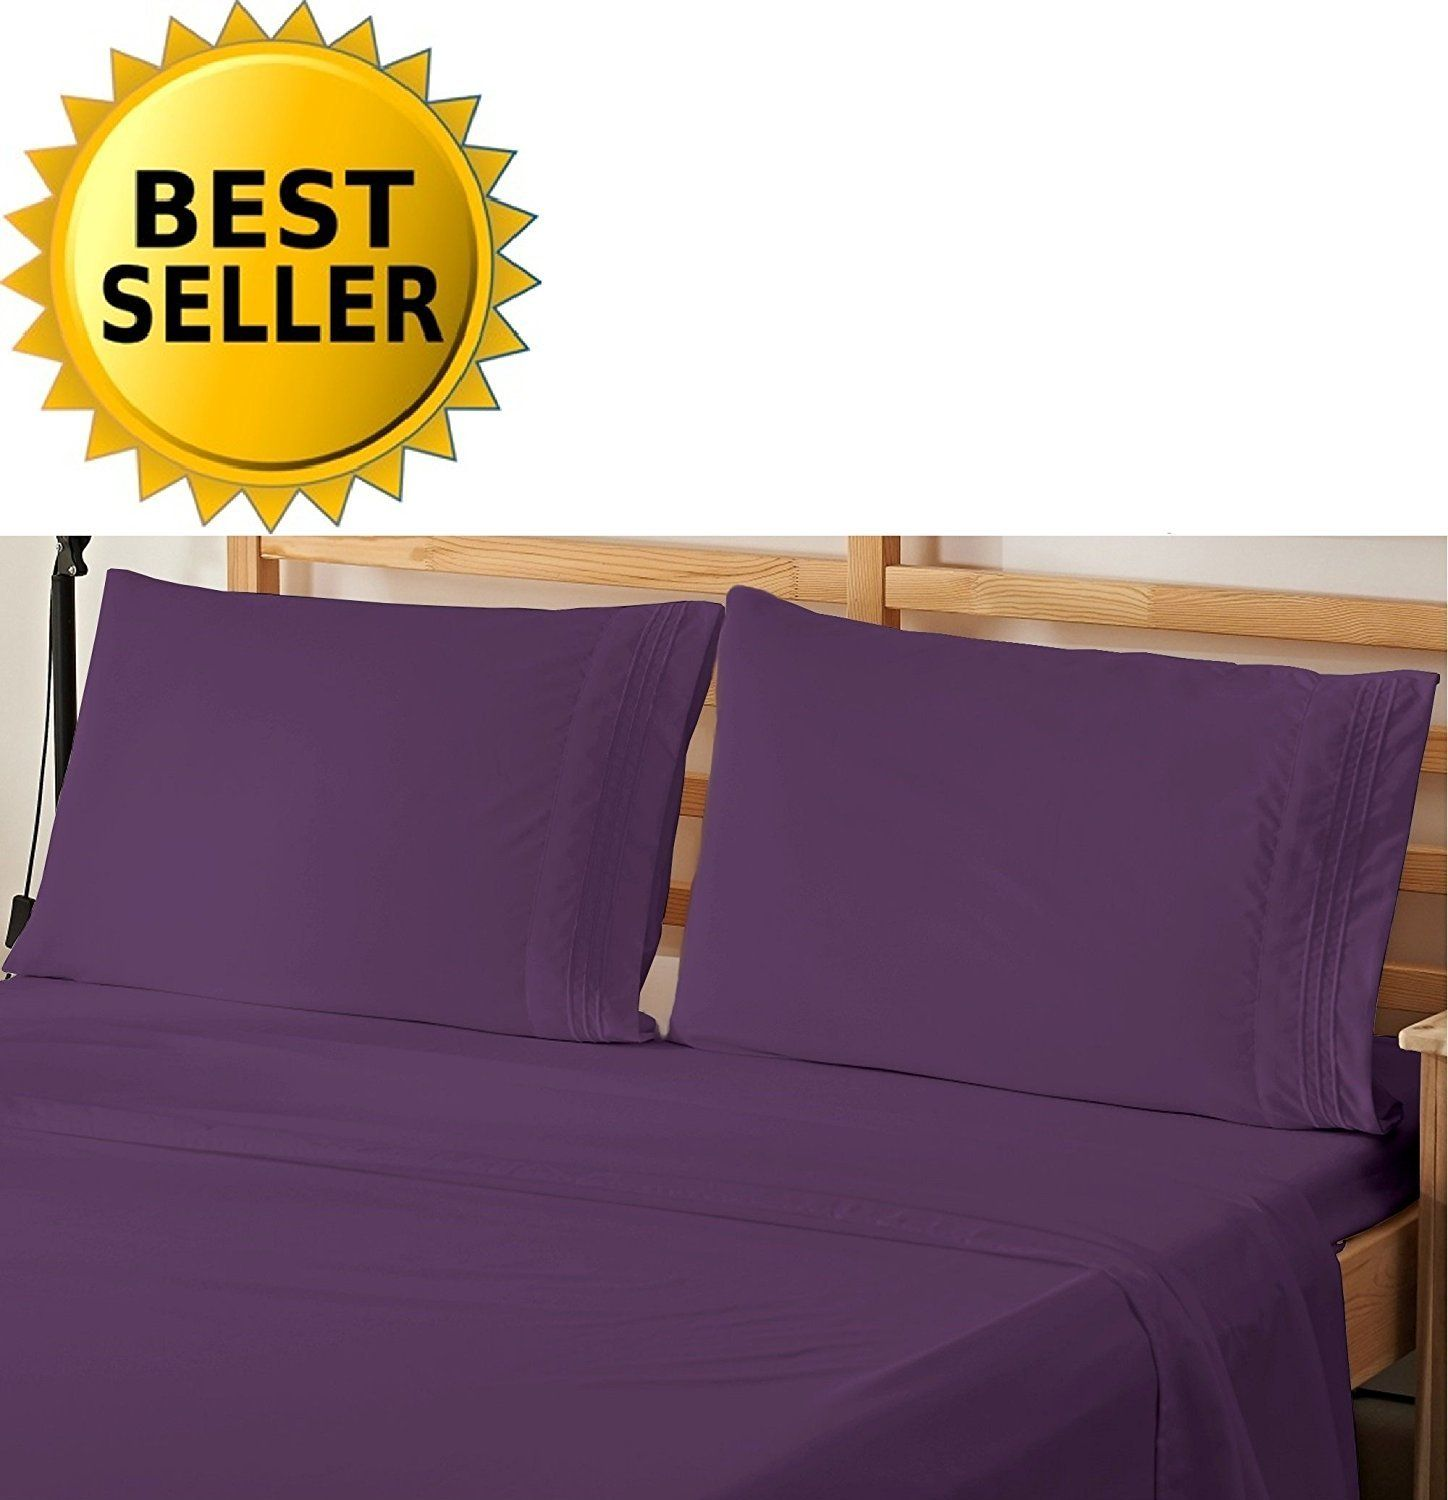 bedspreads gold white full duvets lavender quilt buy and bedding gray sets bedroom set plum dark of comforter royal coverlets queen to beds purple quilts king amazing duvet mauve double twin super size cover covers patterns eggplant bright floral luxury where blue red